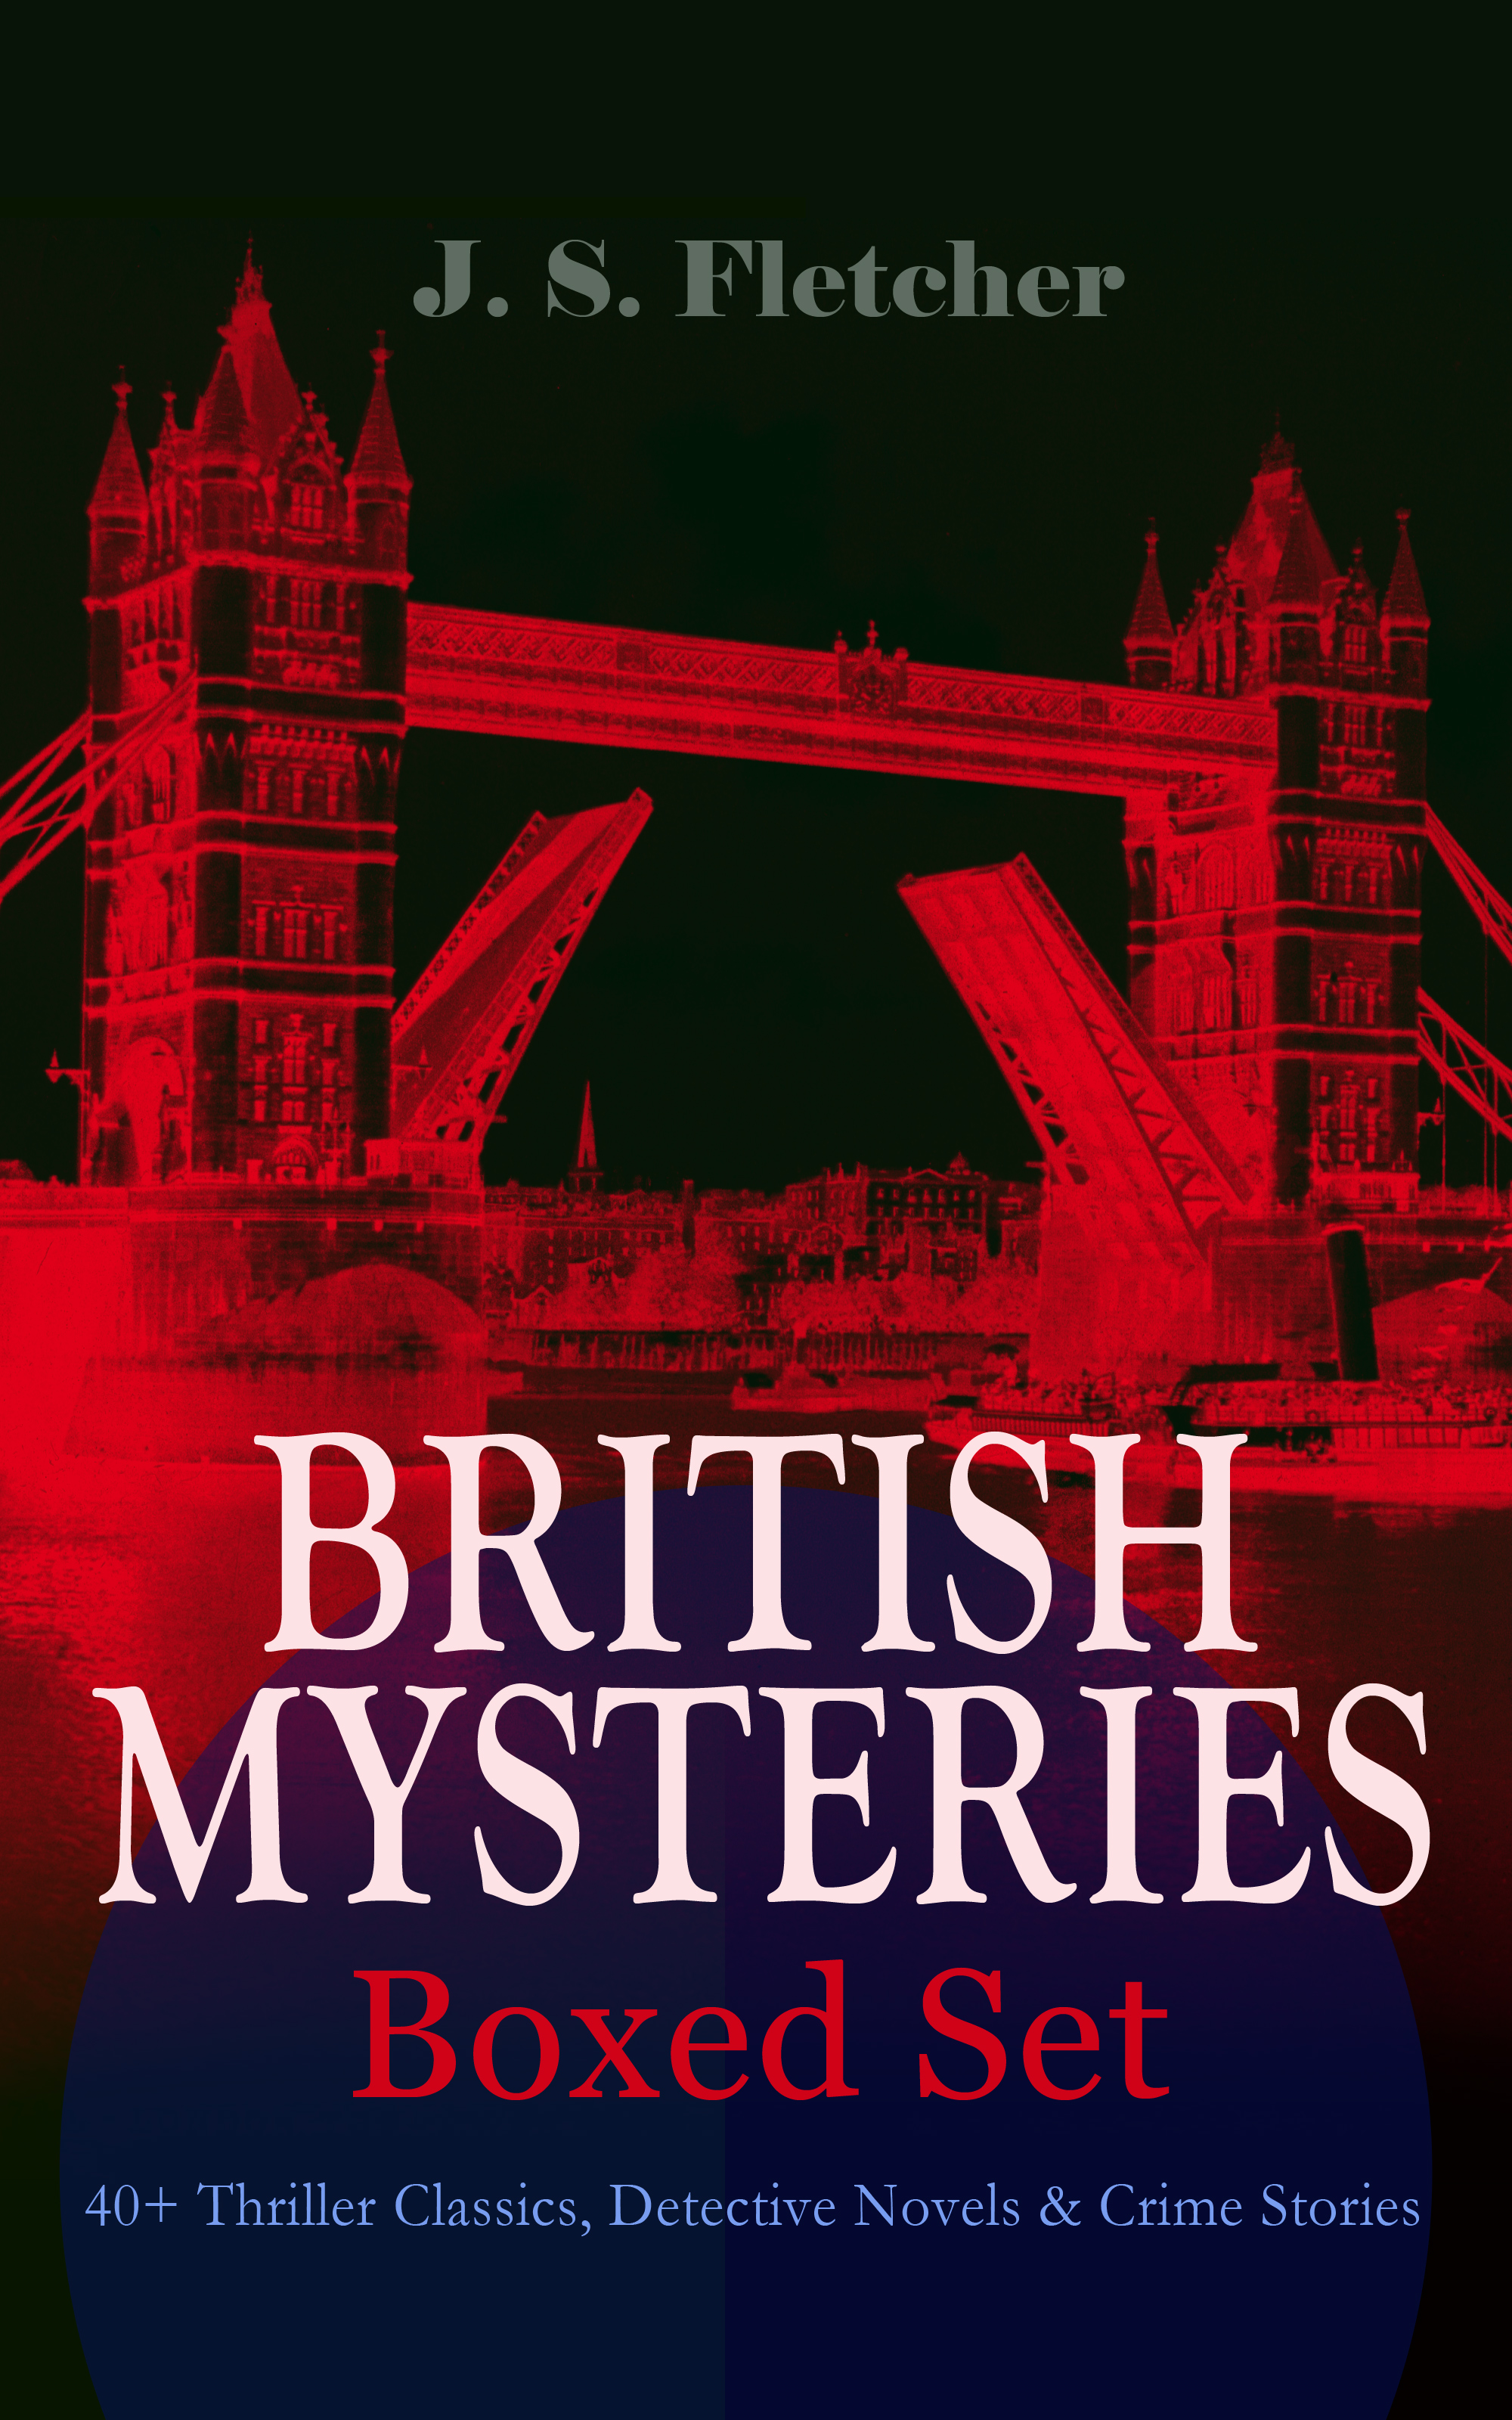 BRITISH MYSTERIES - Boxed Set: 40+ Thriller Classics, Detective Novels #and# Crime Stories